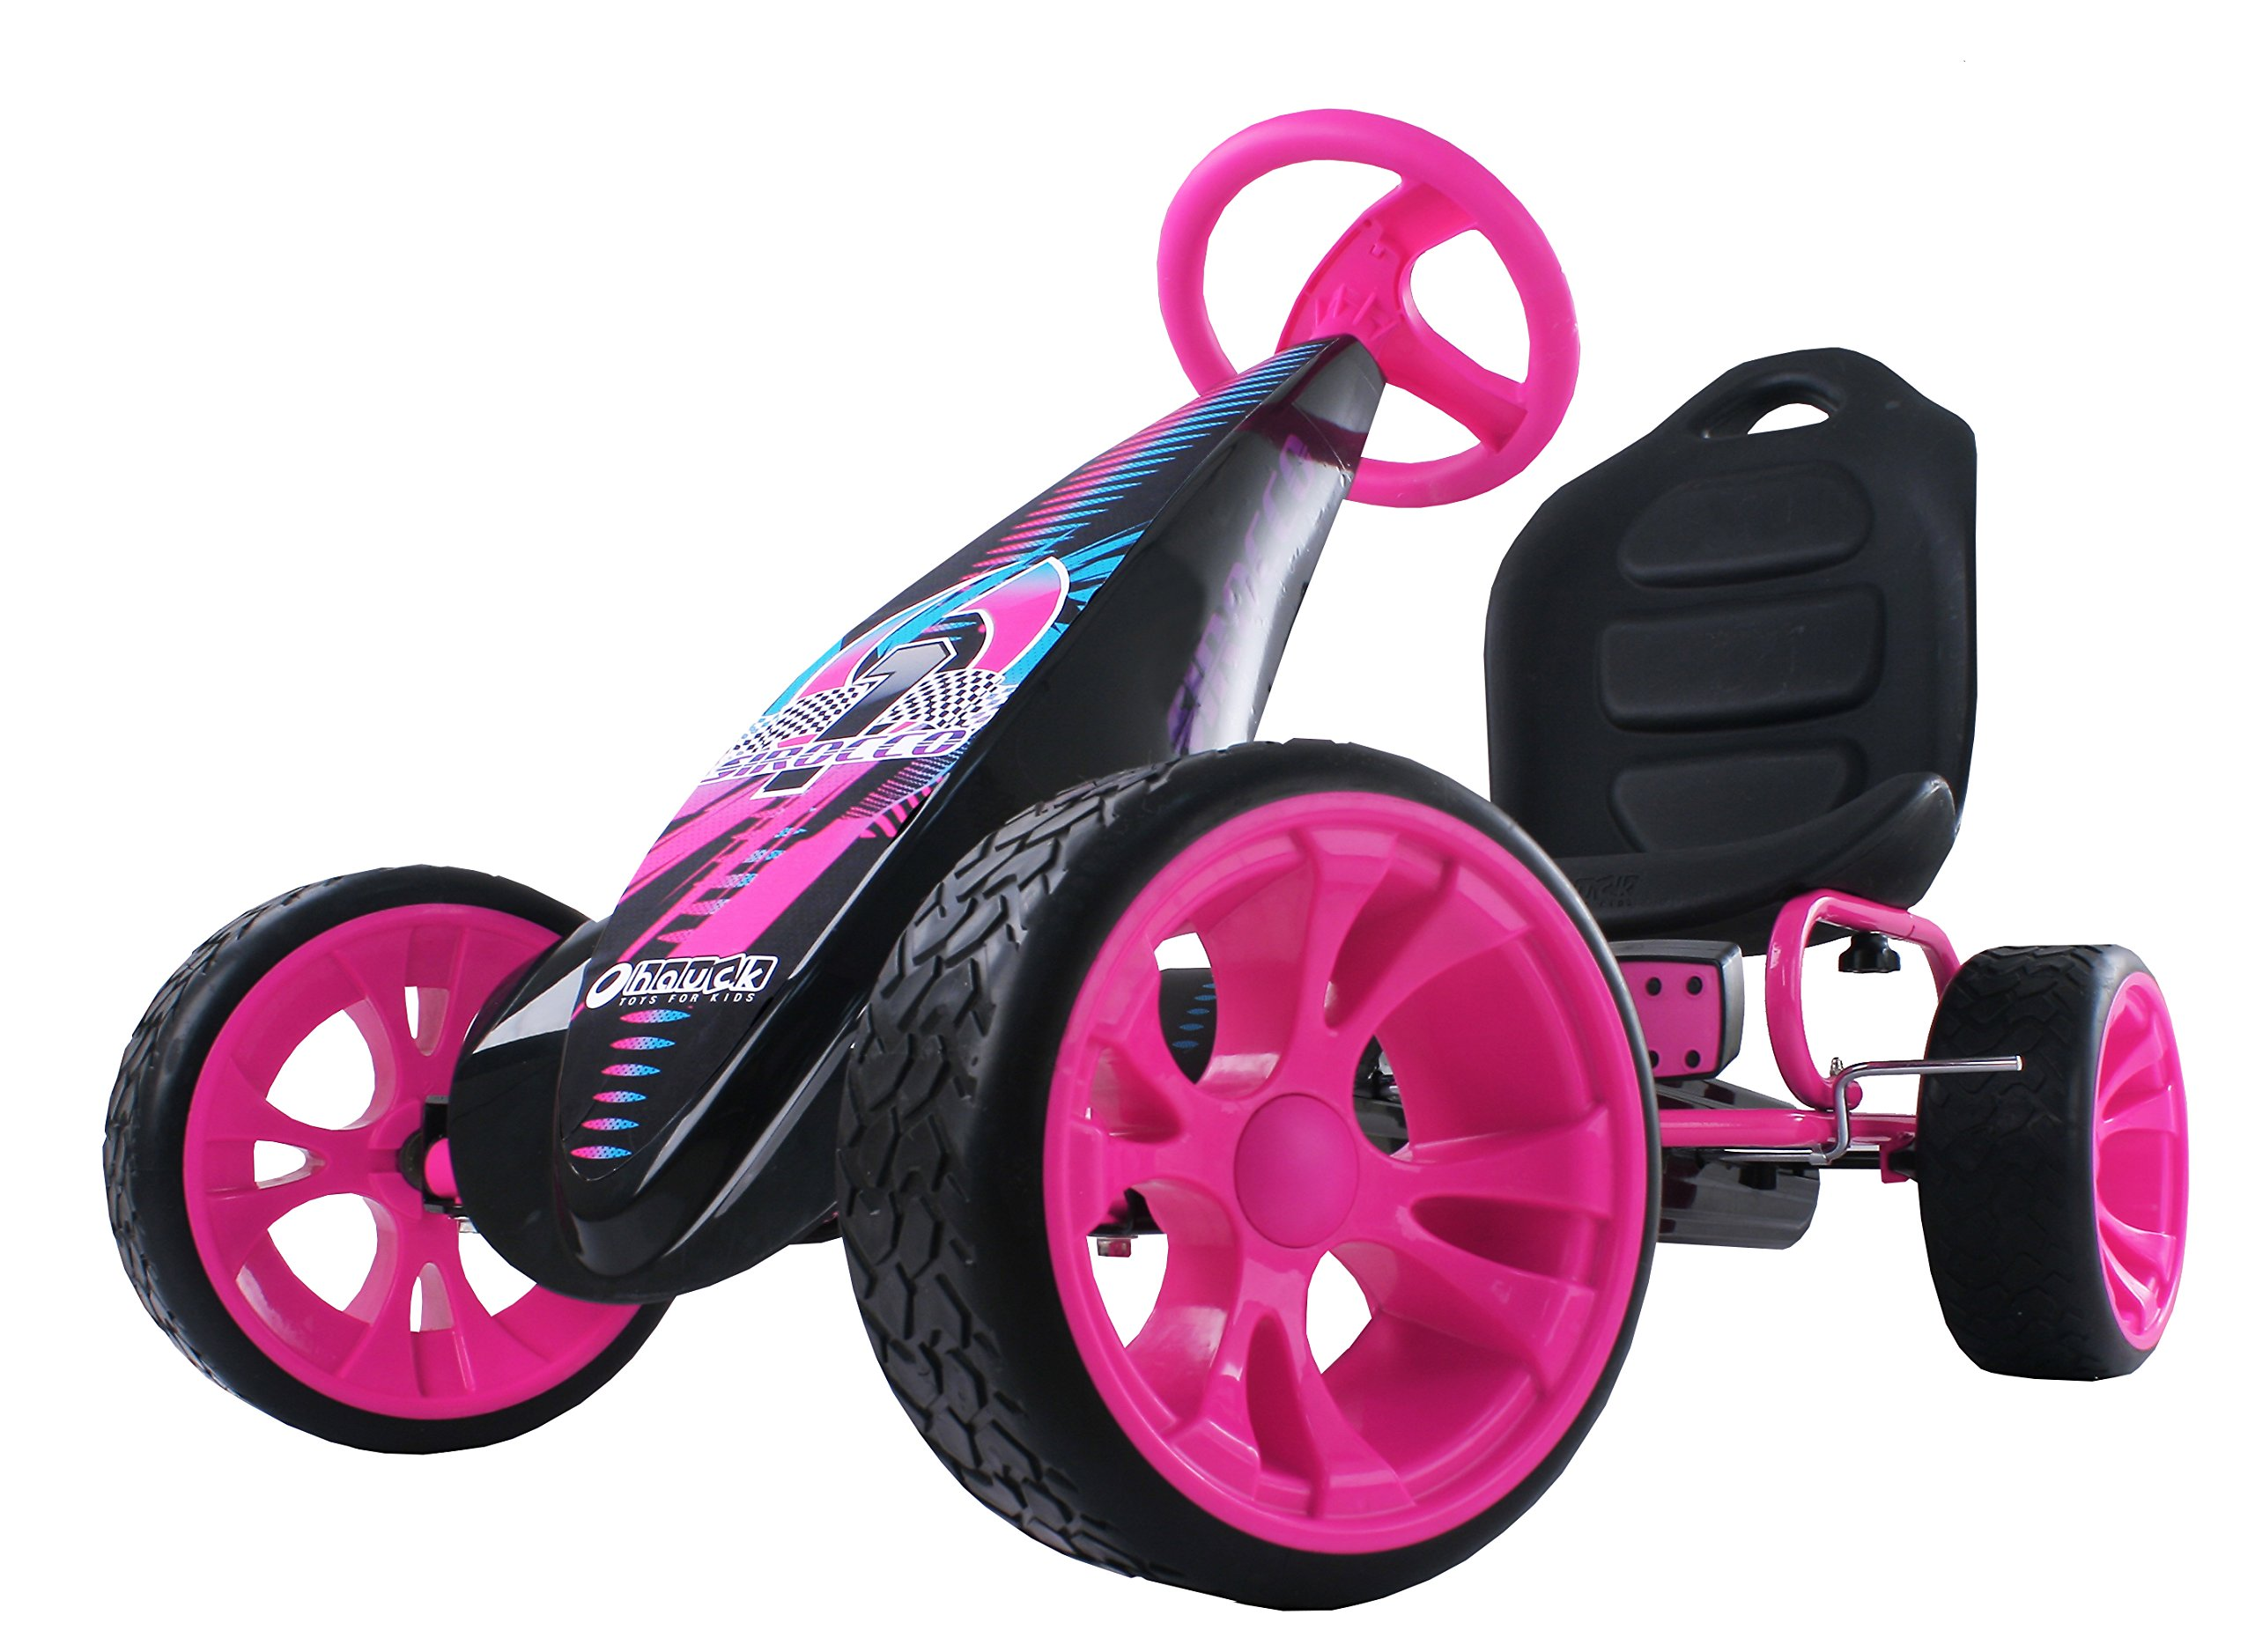 Hauck Sirocco - Racing Go Kart   Pedal Car   Low profile rubber tires   Pedal power auto-clutch free-ride   Adjustable seat  - Pink